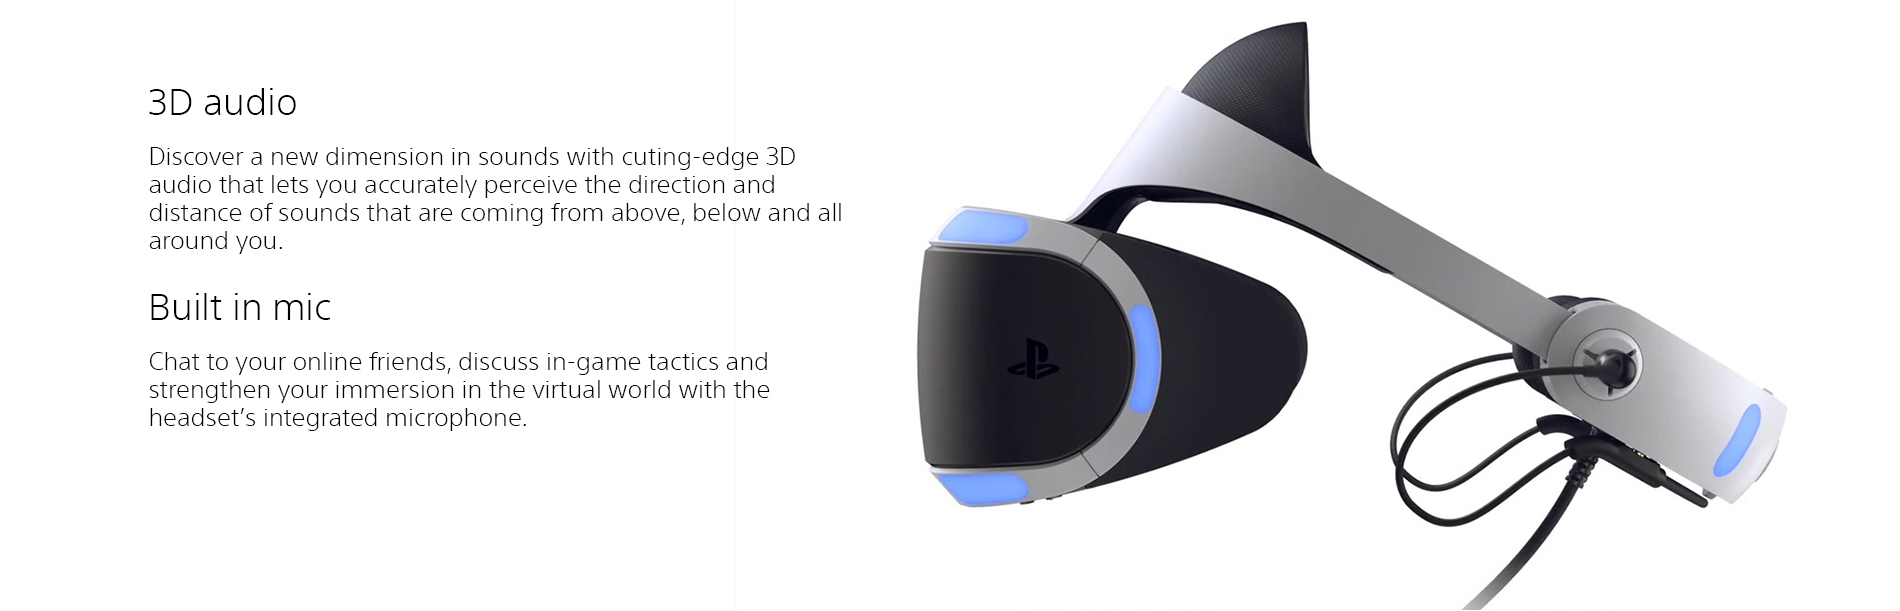 Sony Playstation Vr Landing Page  Tile 03